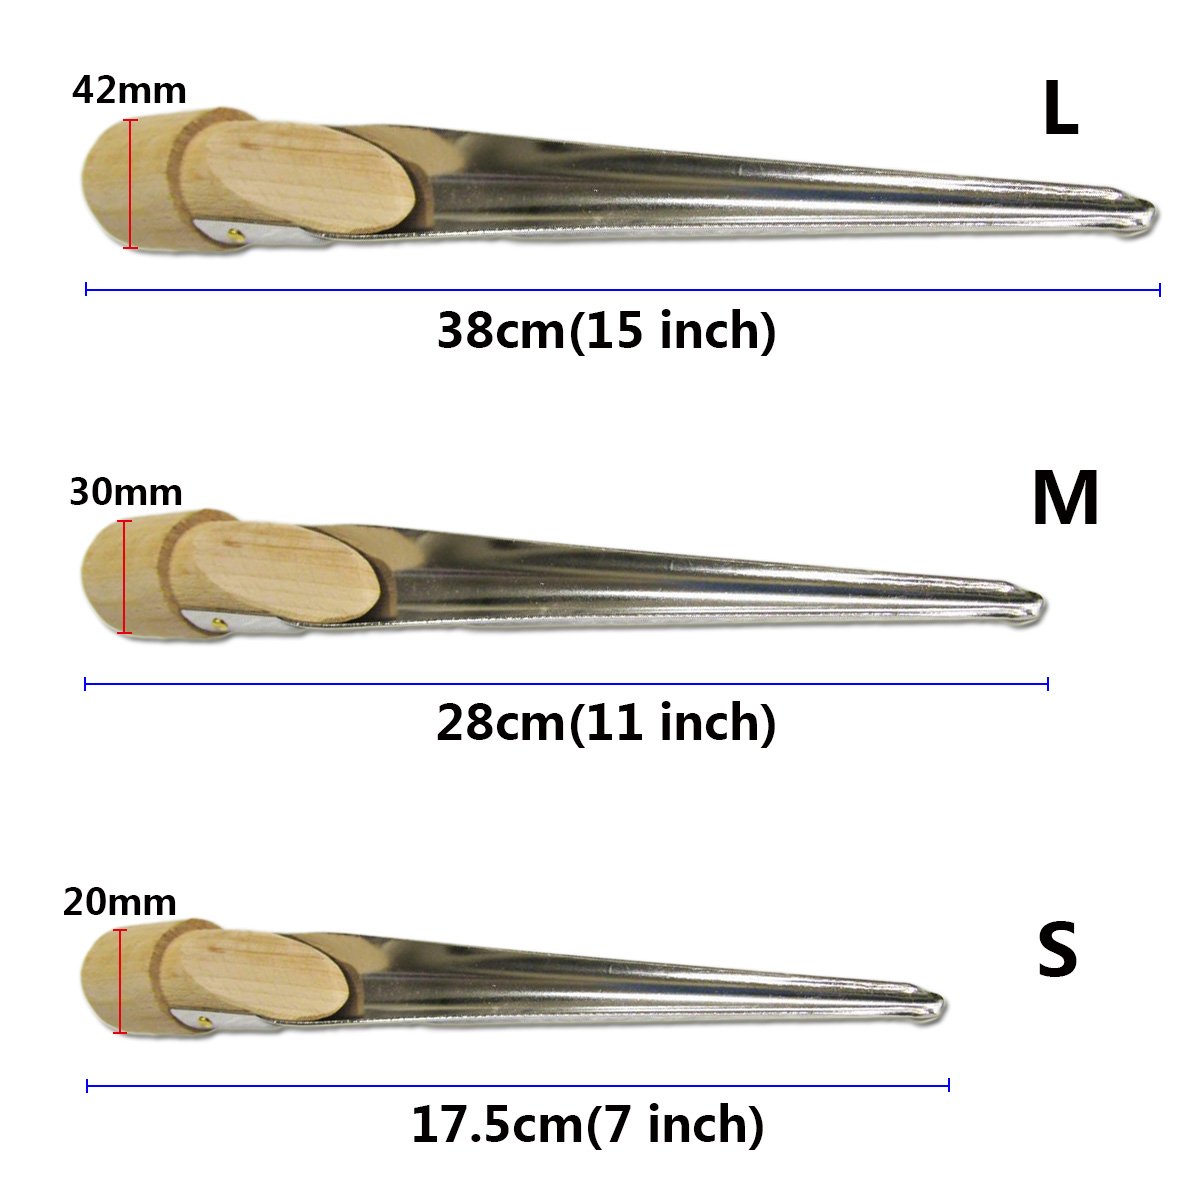 Large 280mm Stainless Steel Splicing Spike Fid Swedish Rope 3 Strand AS35